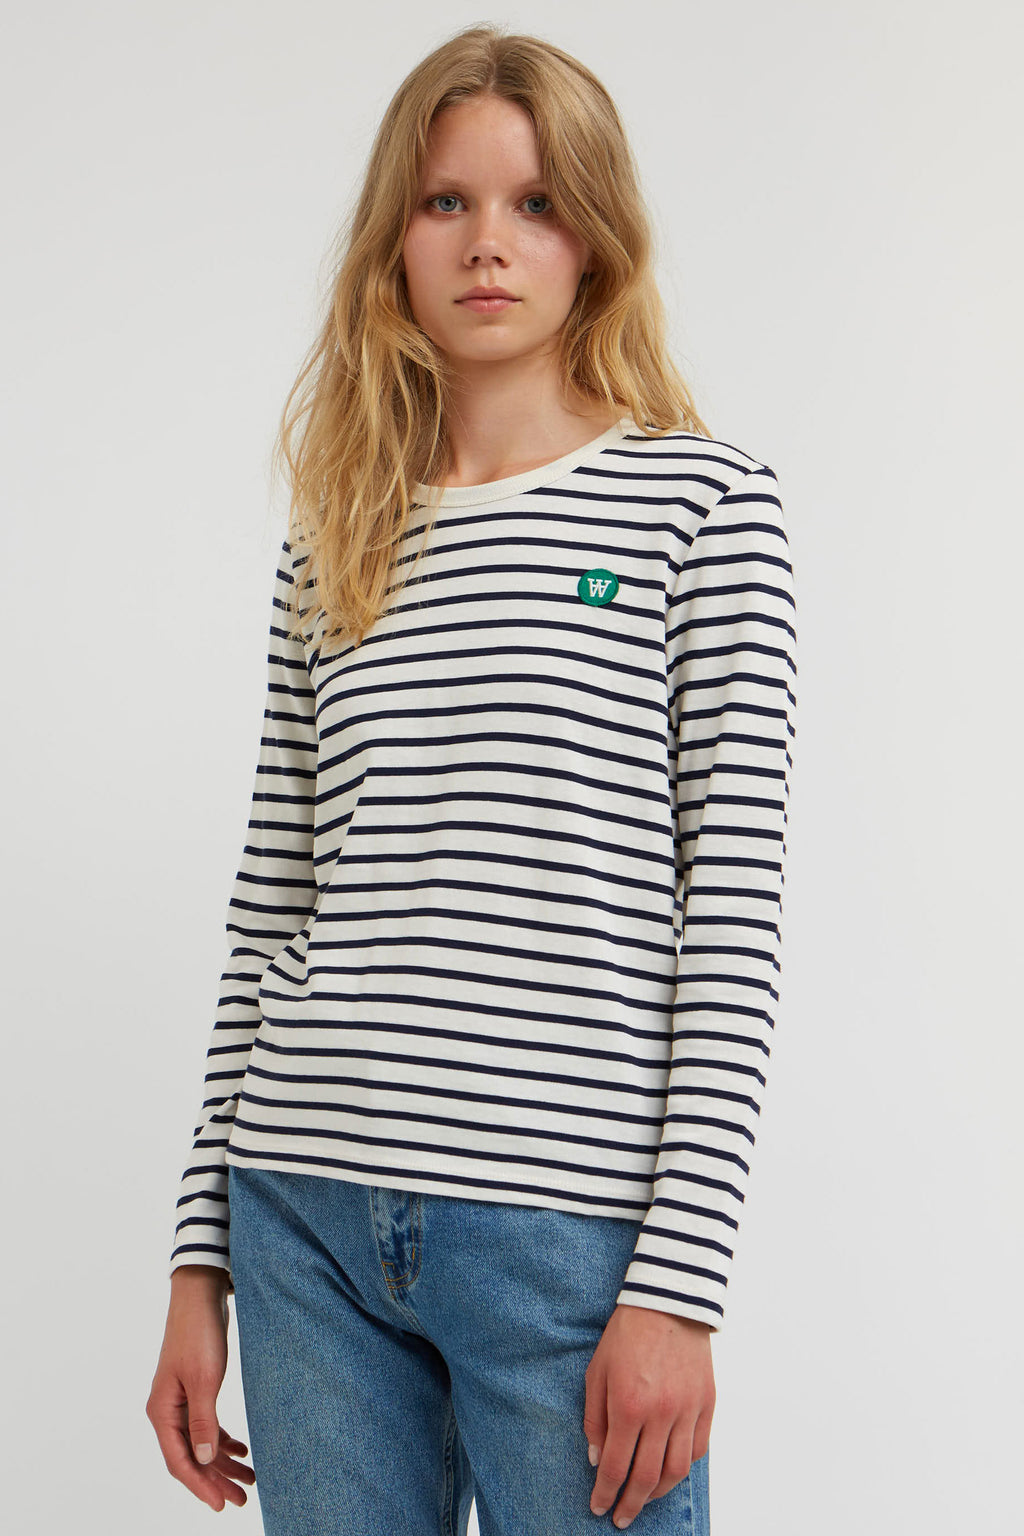 Wood Wood Moa Off White & Navy Top